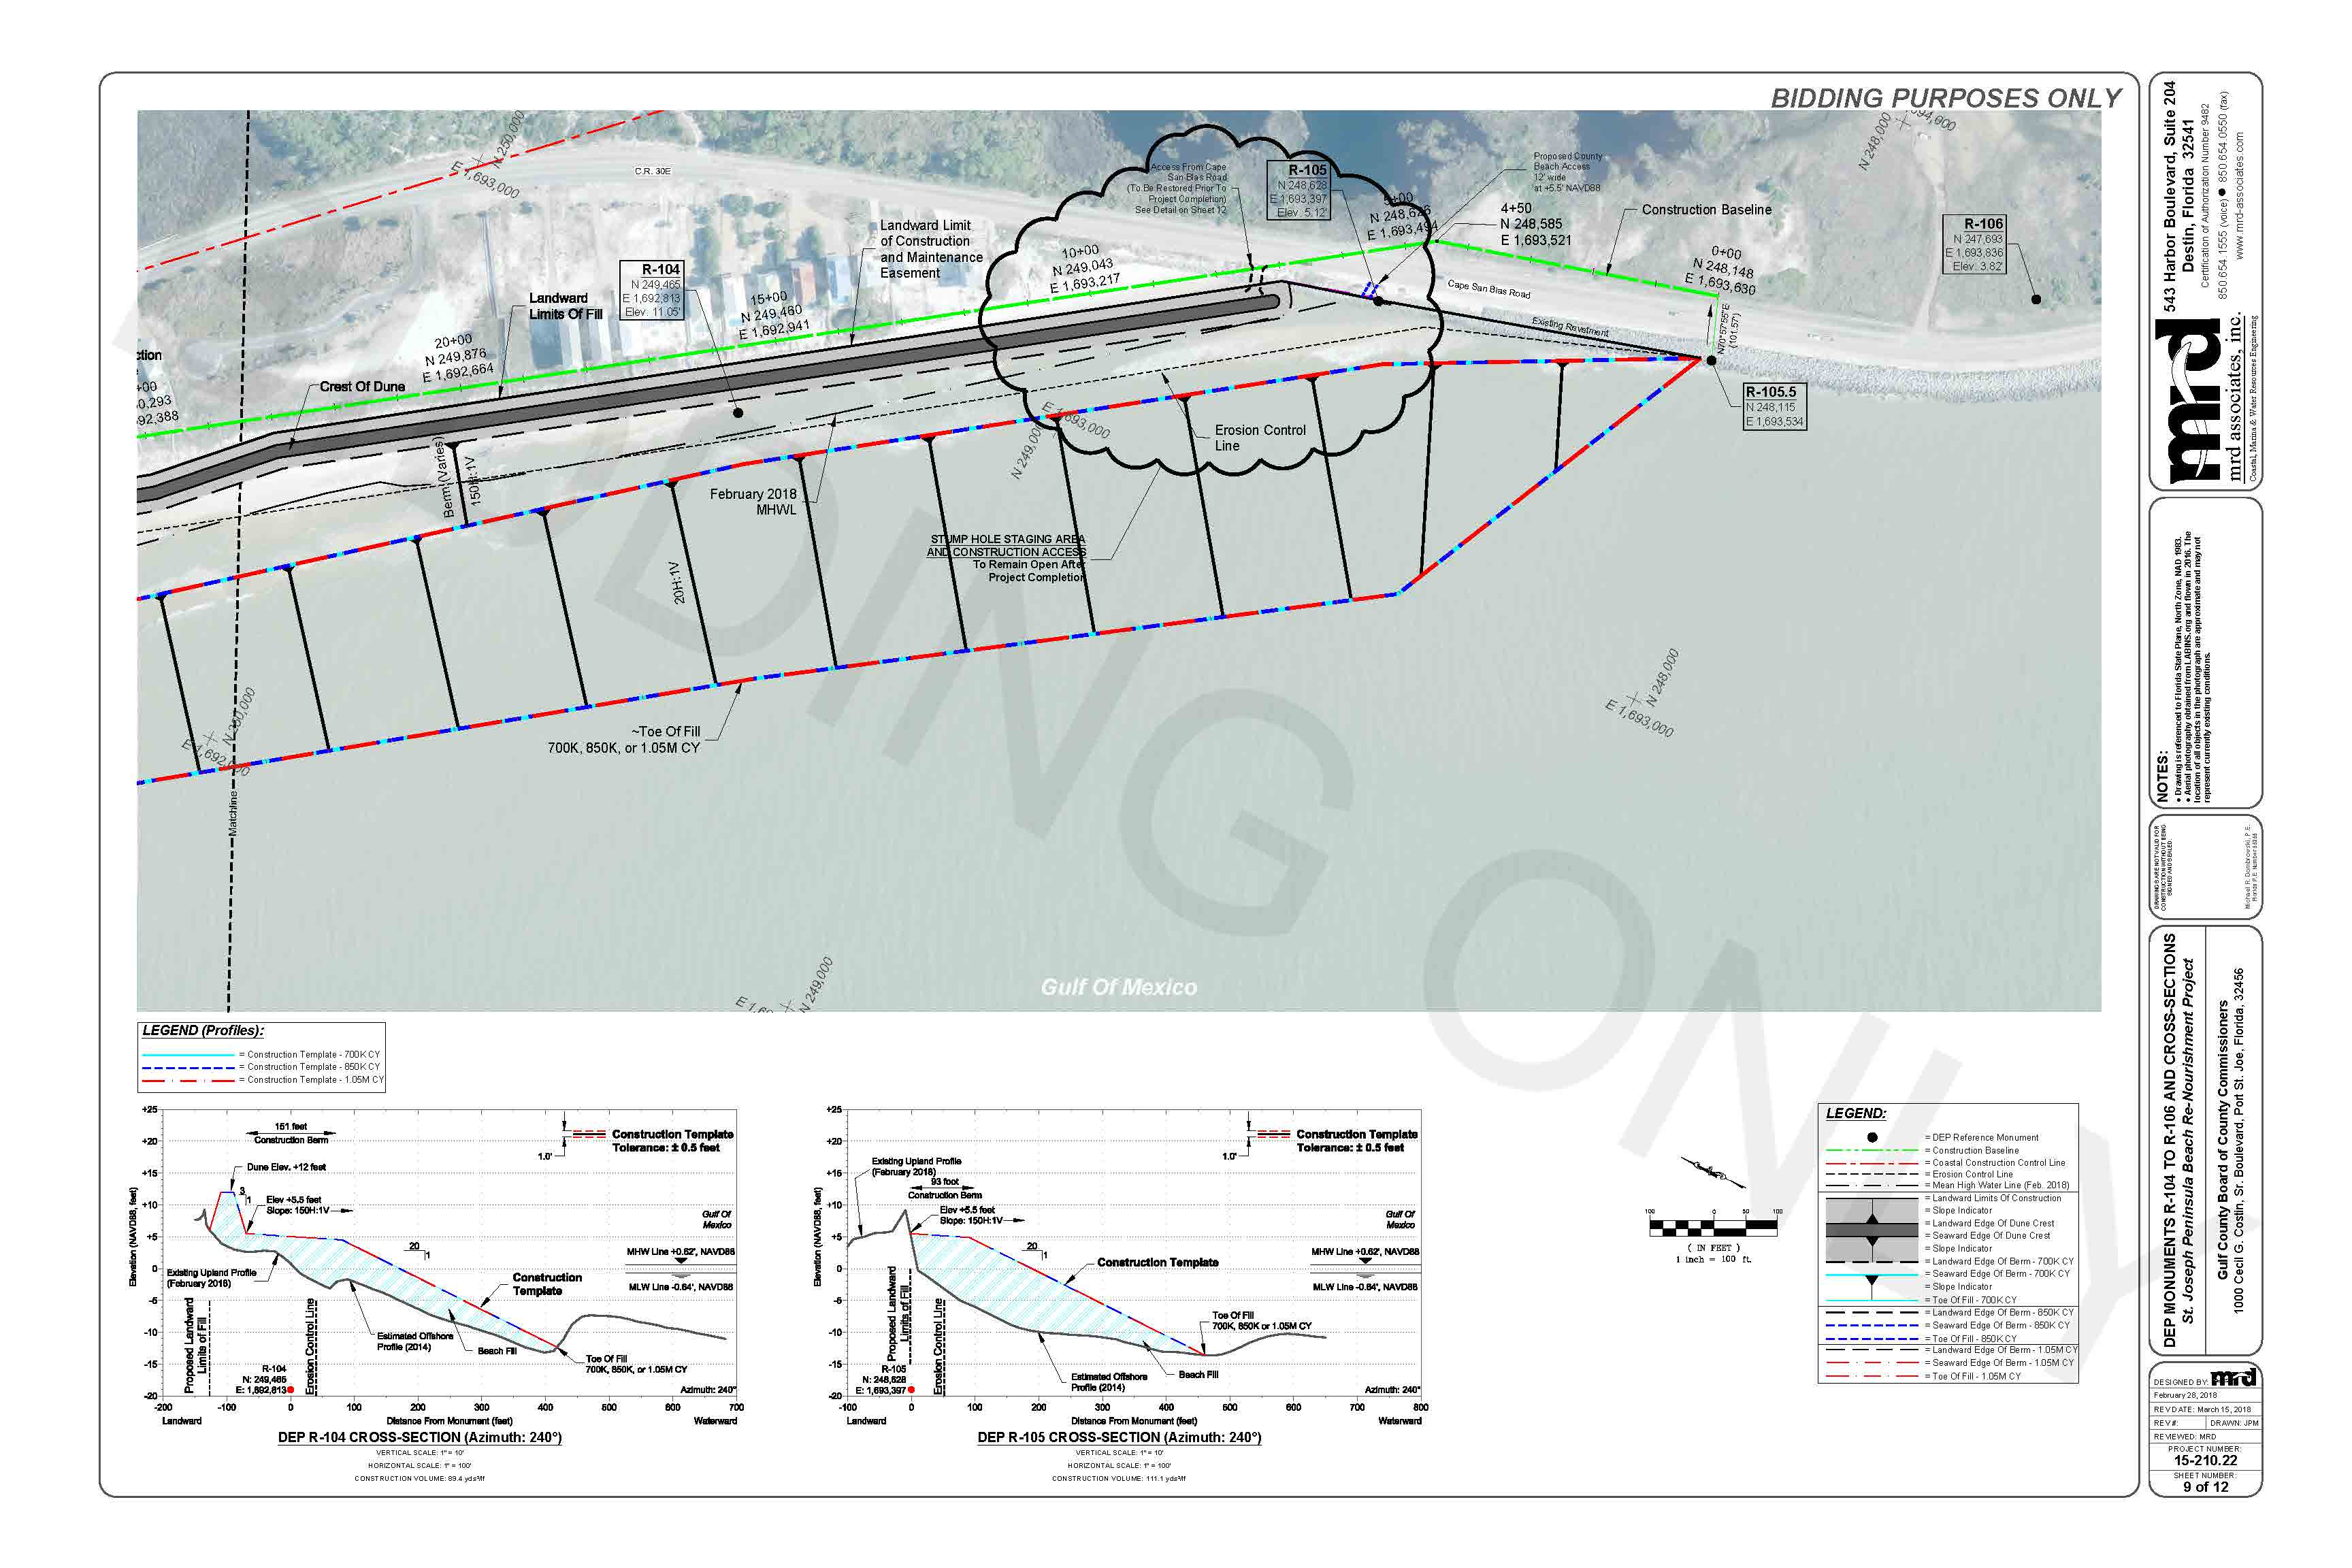 Construction Drawings For The 2018 Re Bidding